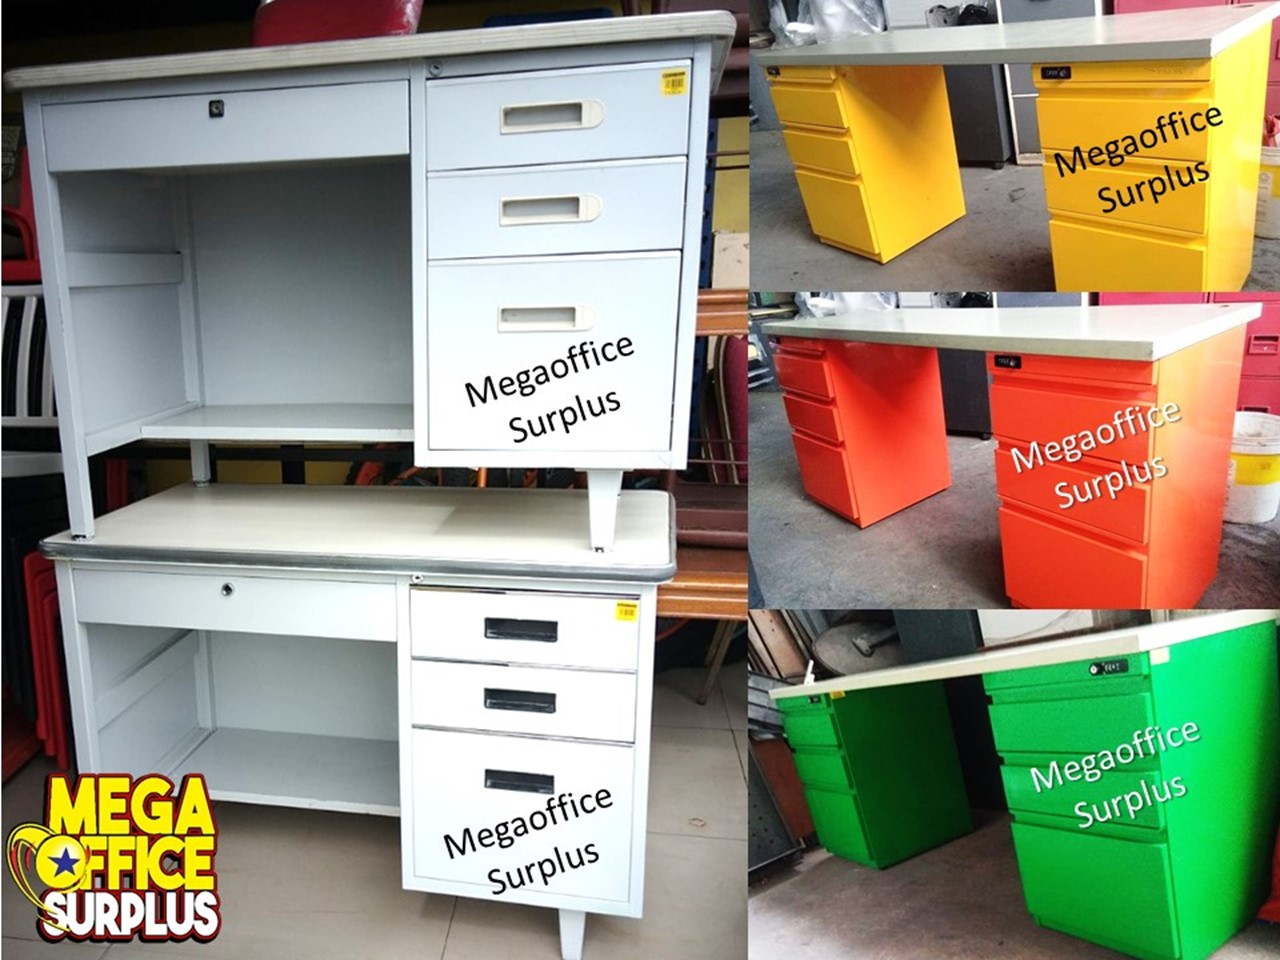 Refurbish Surplus Table megaoffice